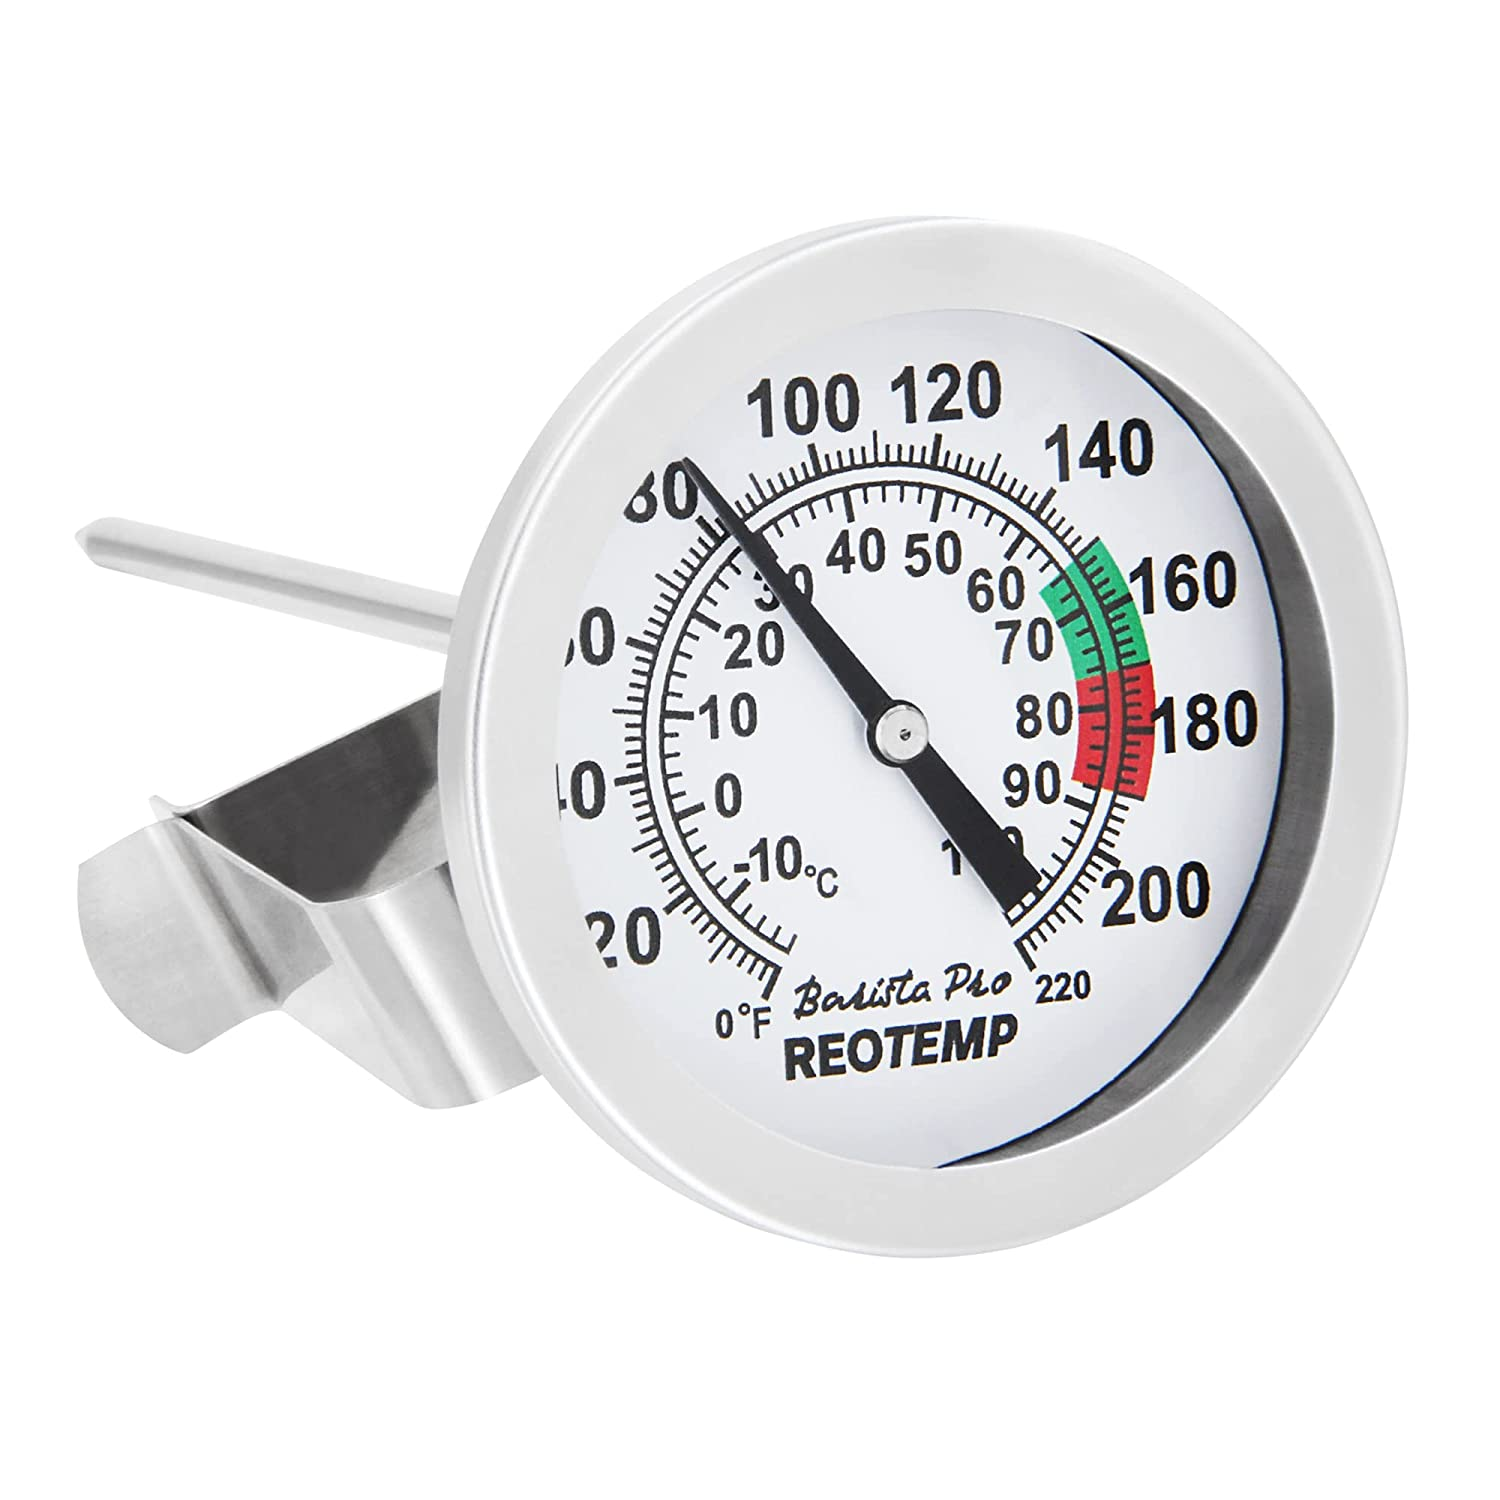 Reotemp K83C1 Barista Pro Milk Frothing Coffee Thermometer (5 in Stem)